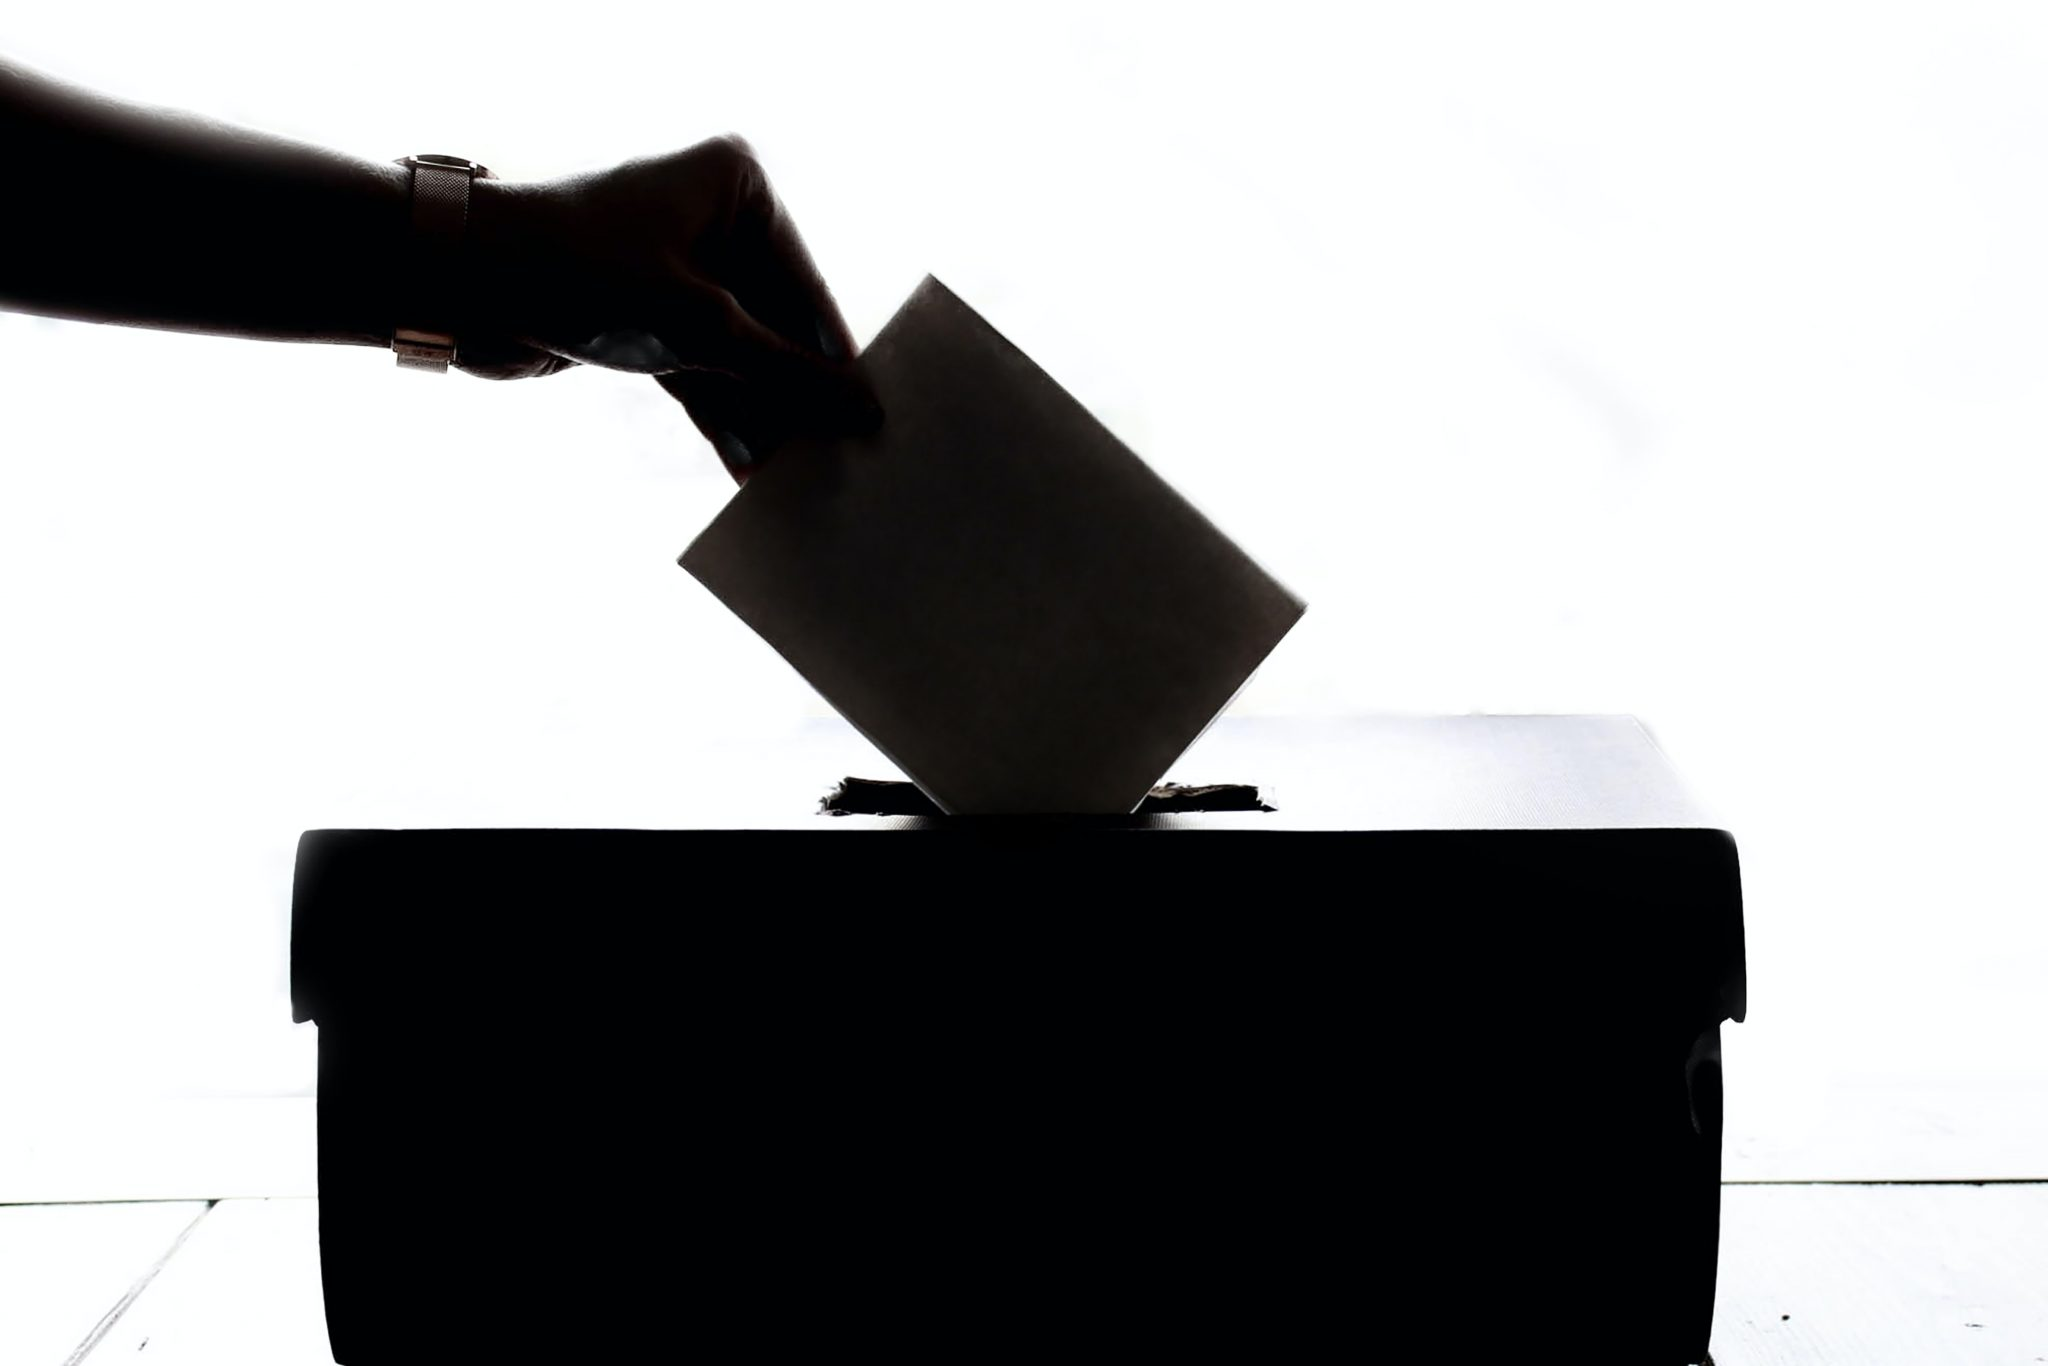 person putting envilope in the voting box // will the republican party make it harder to vote? // PHOTO BY ELEMENT5 DIGITAL ON UNSPLASH